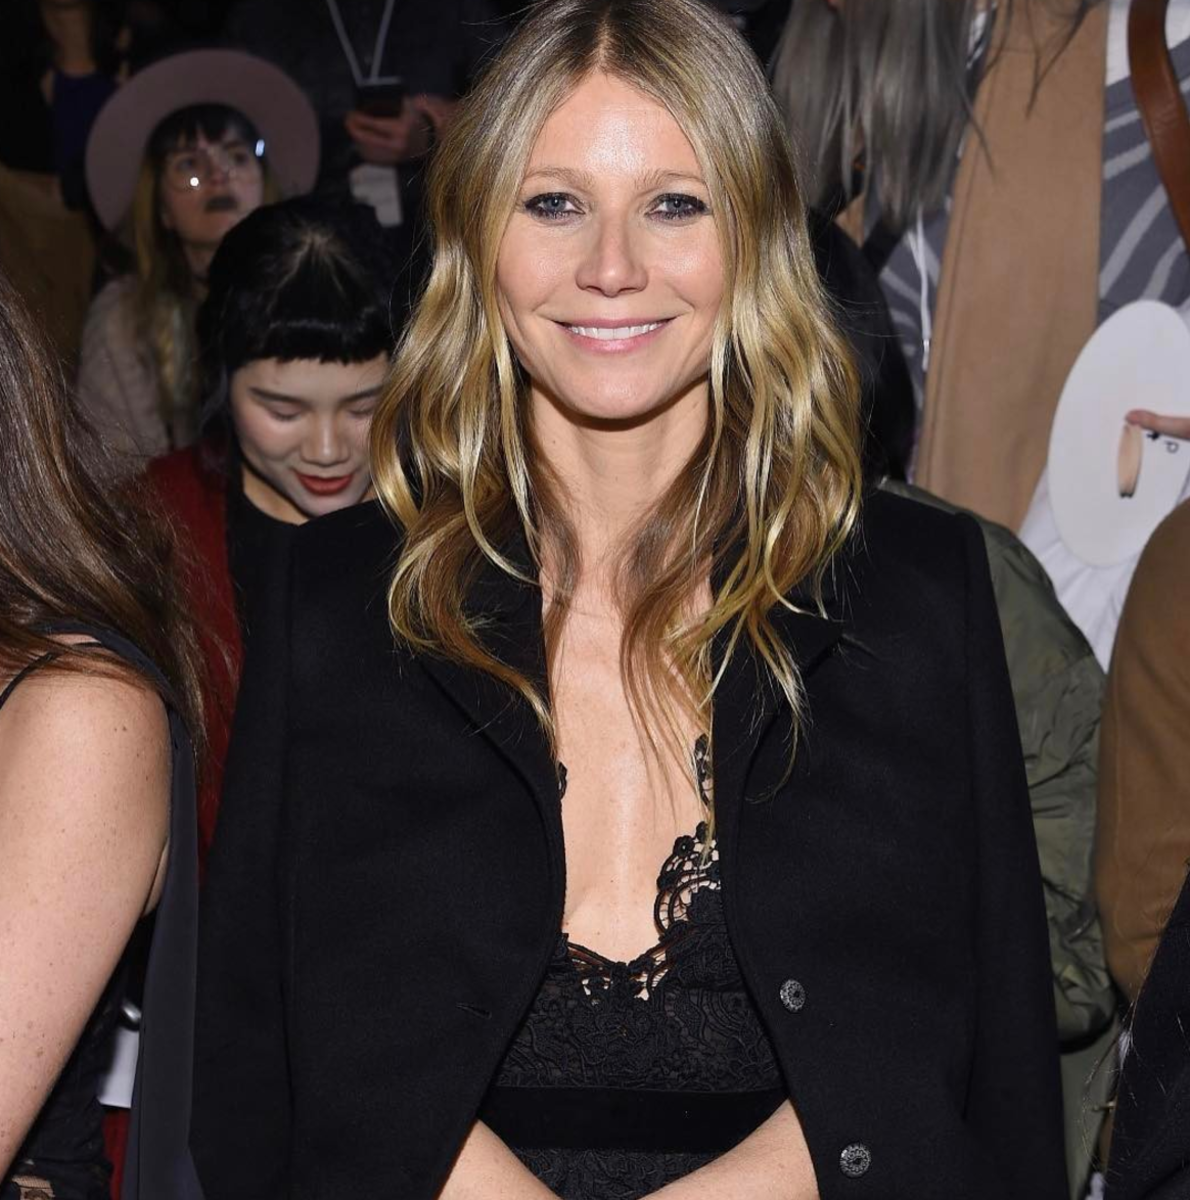 Should You try Gwyneth Paltrow's Parasite Cleanse